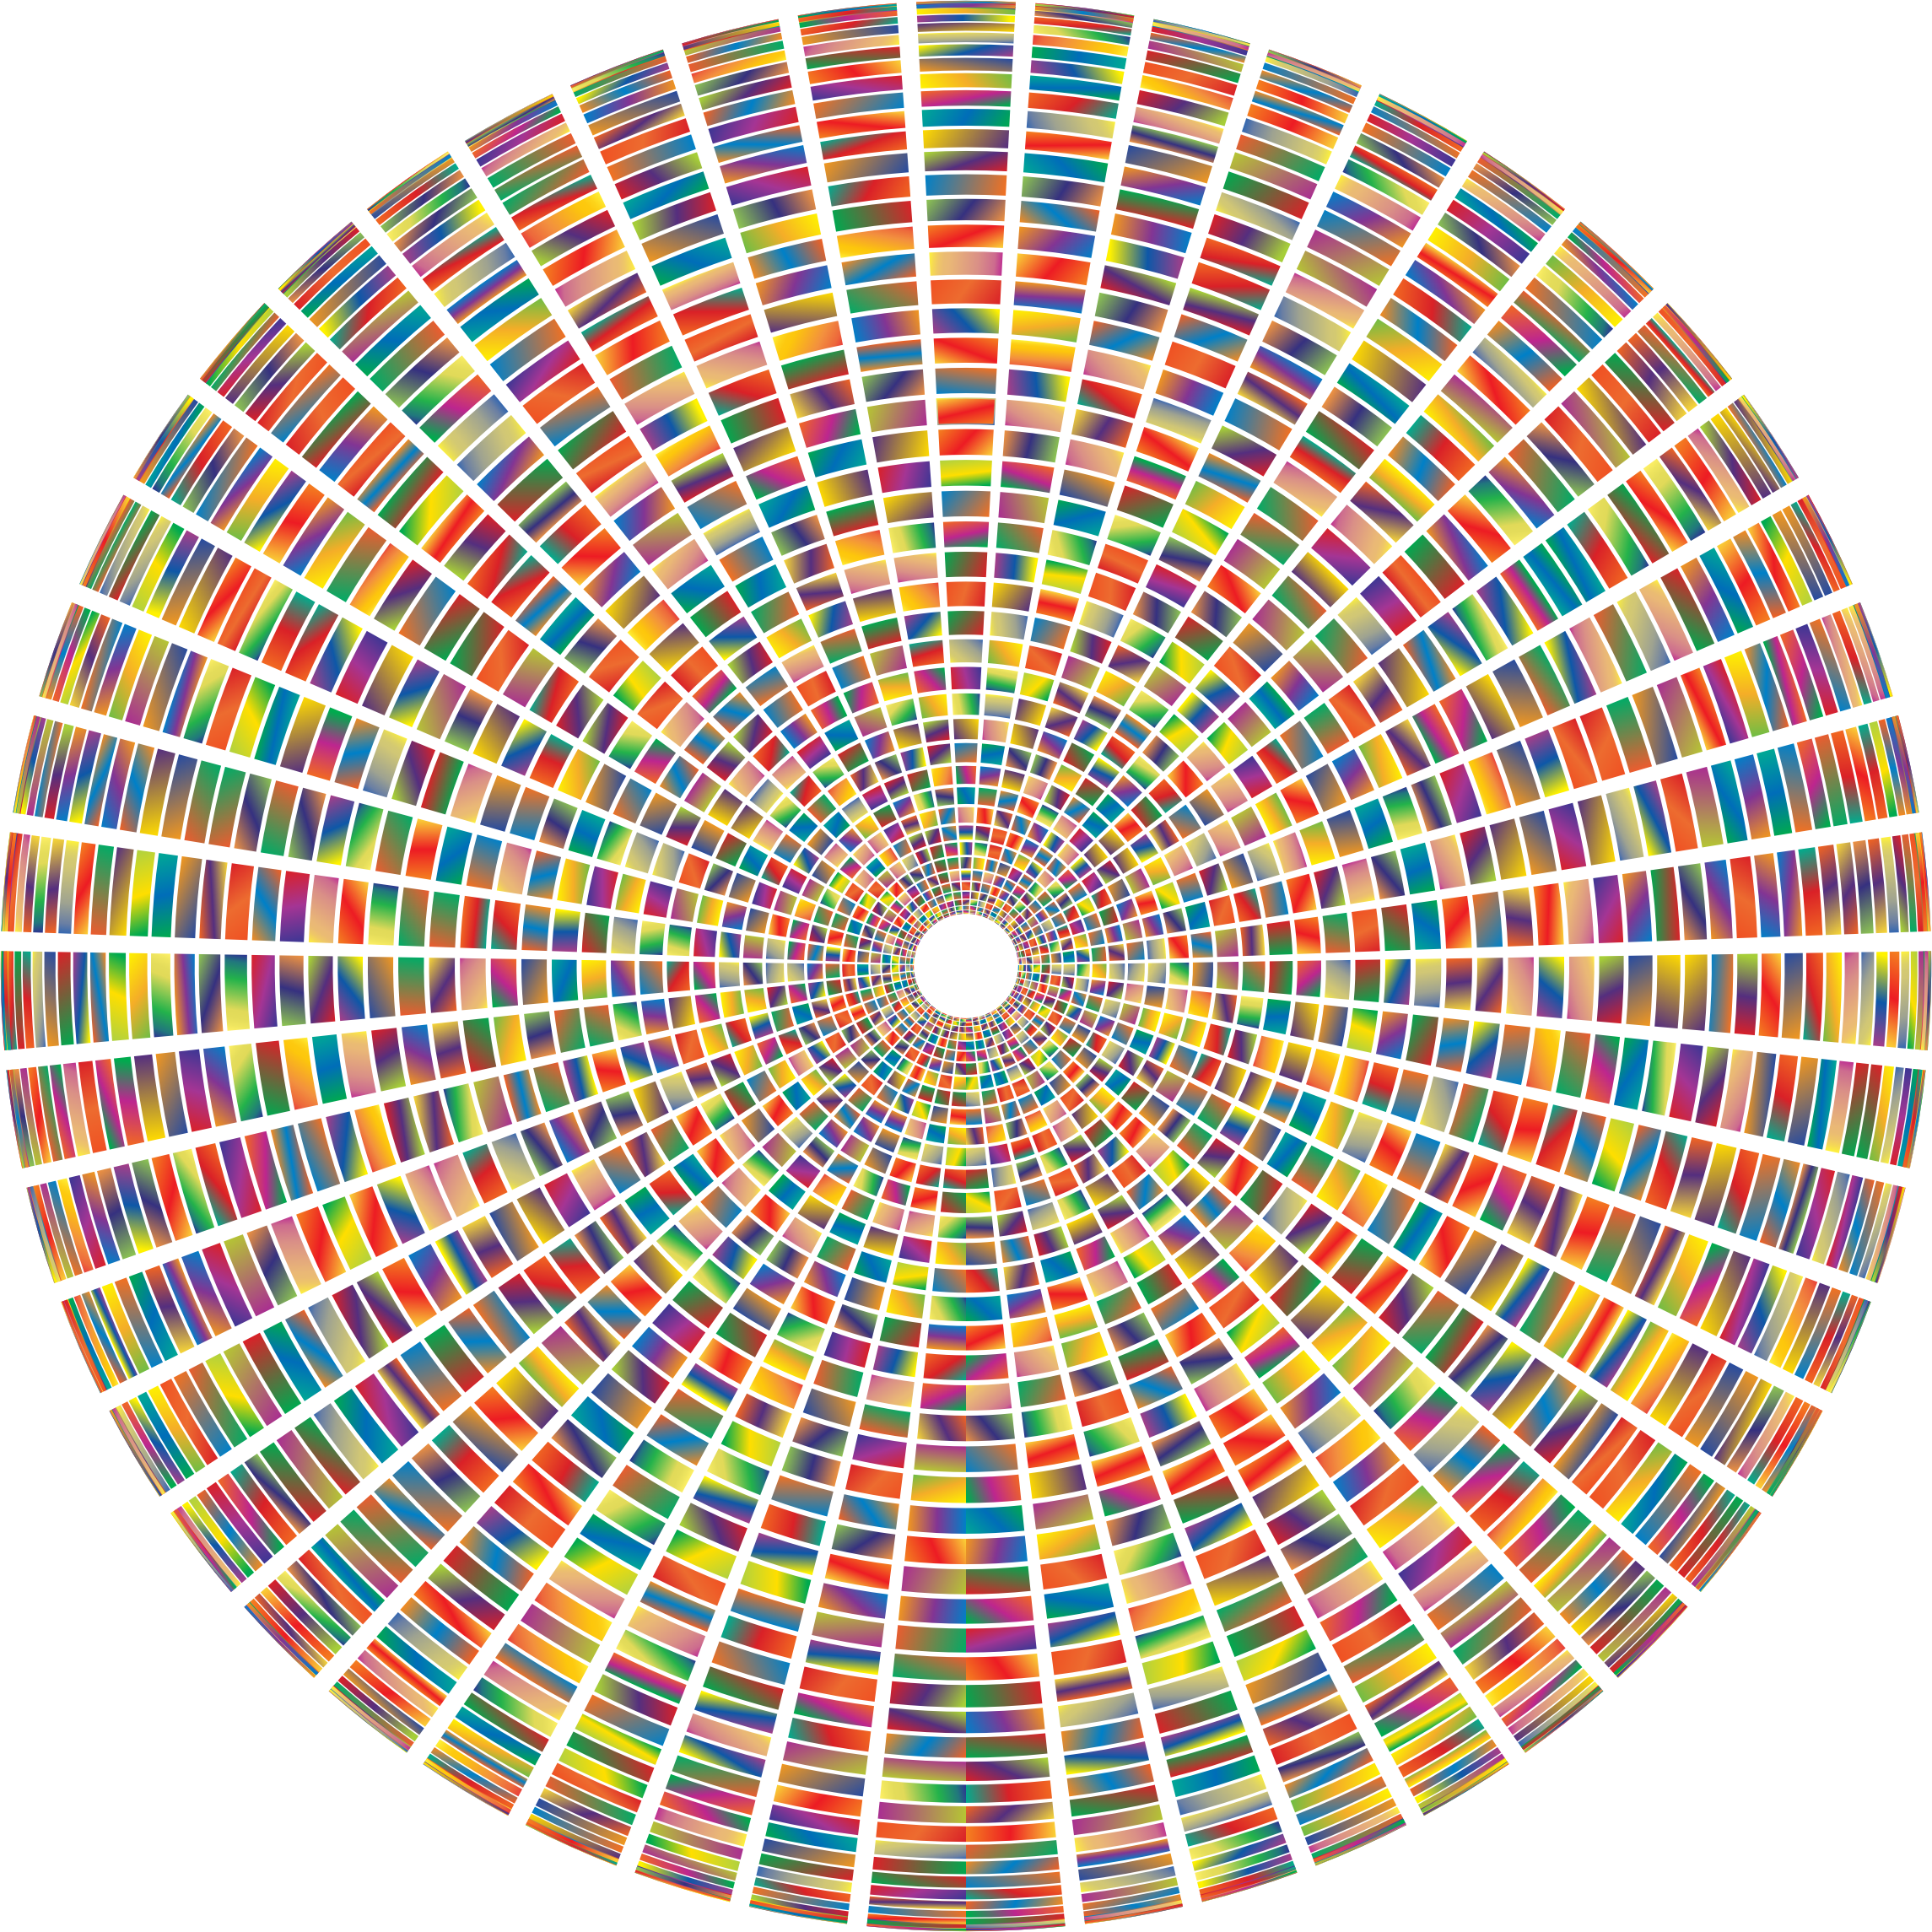 Prismatic Segmented Circle 2 by GDJ